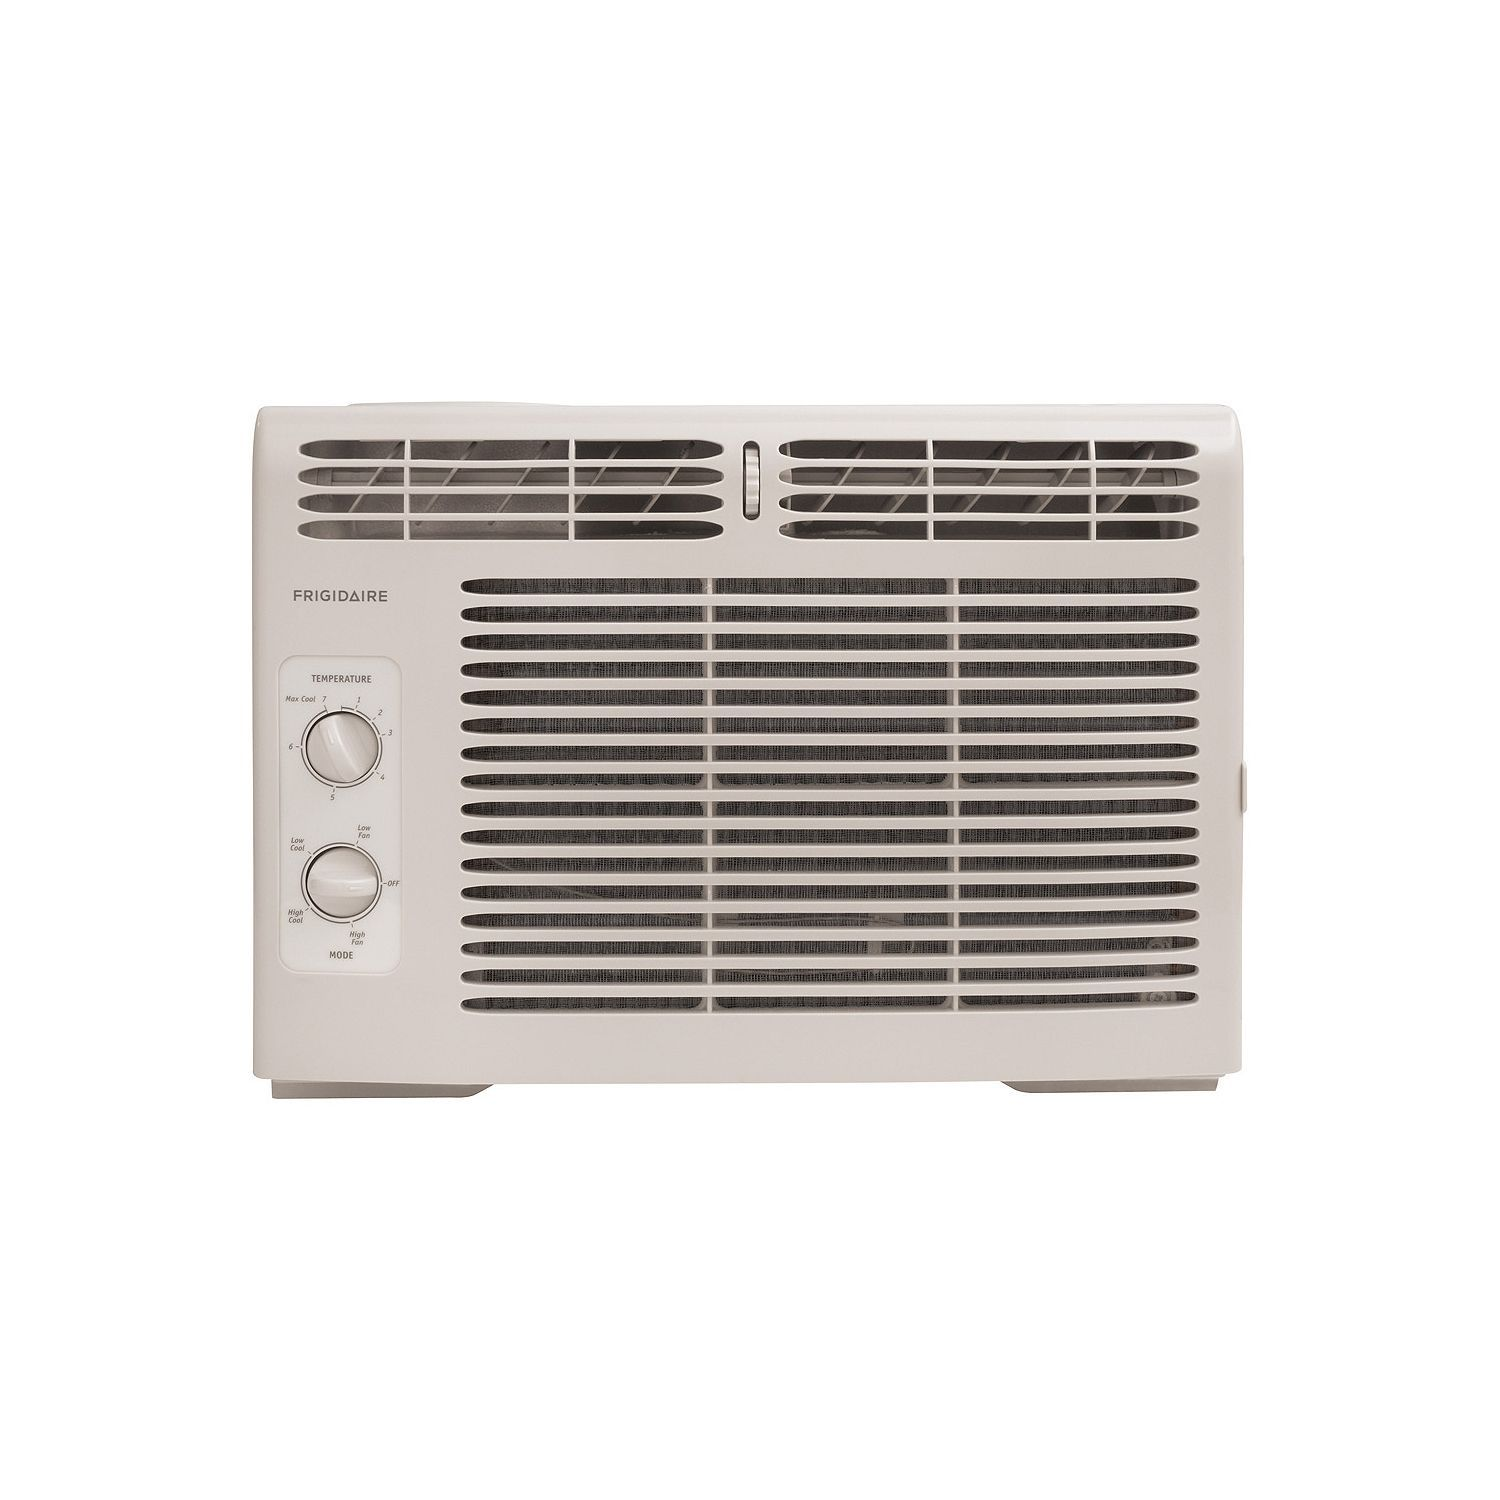 Http Www Mobilehomerepairtips Com Howtobuyanairconditionerforamobilehome Php Has Some Info On The Types Of Air Conditioners That Can Be Window Air Conditioner